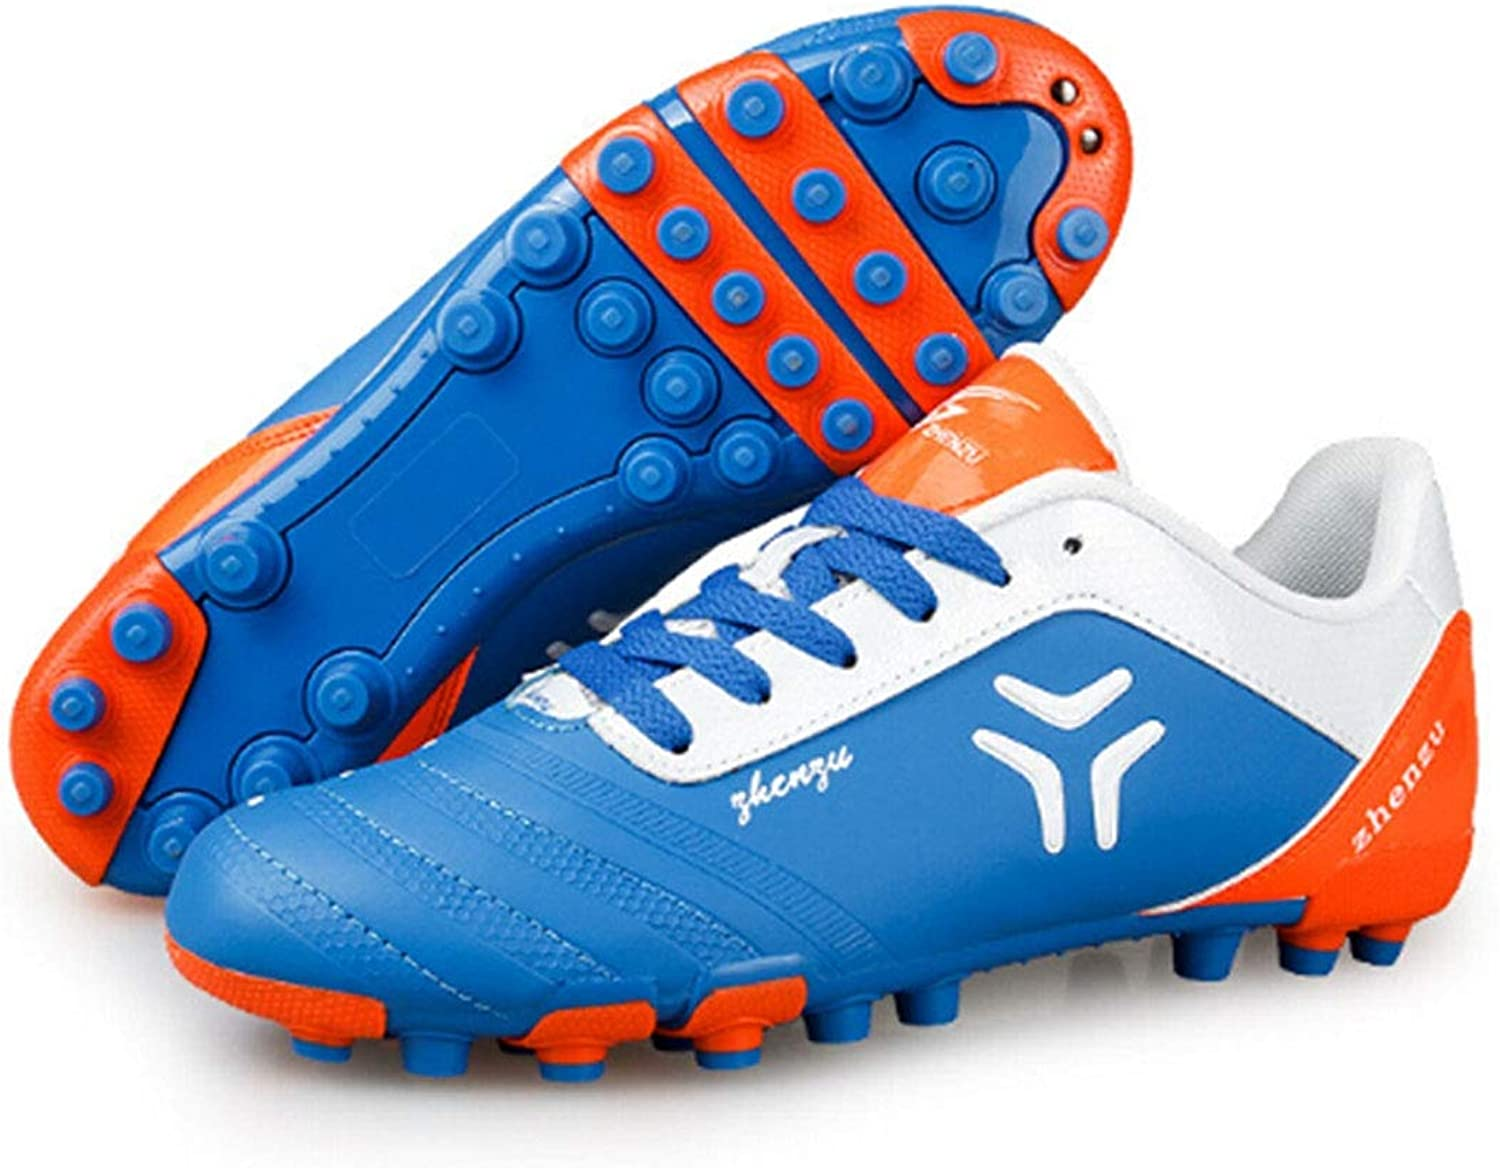 Linmatealliance Outdoor&Sports shoes Zhenzu Outdoor Sporting Professional Training PU Short Nail Football shoes, EU Size  44(bluee)